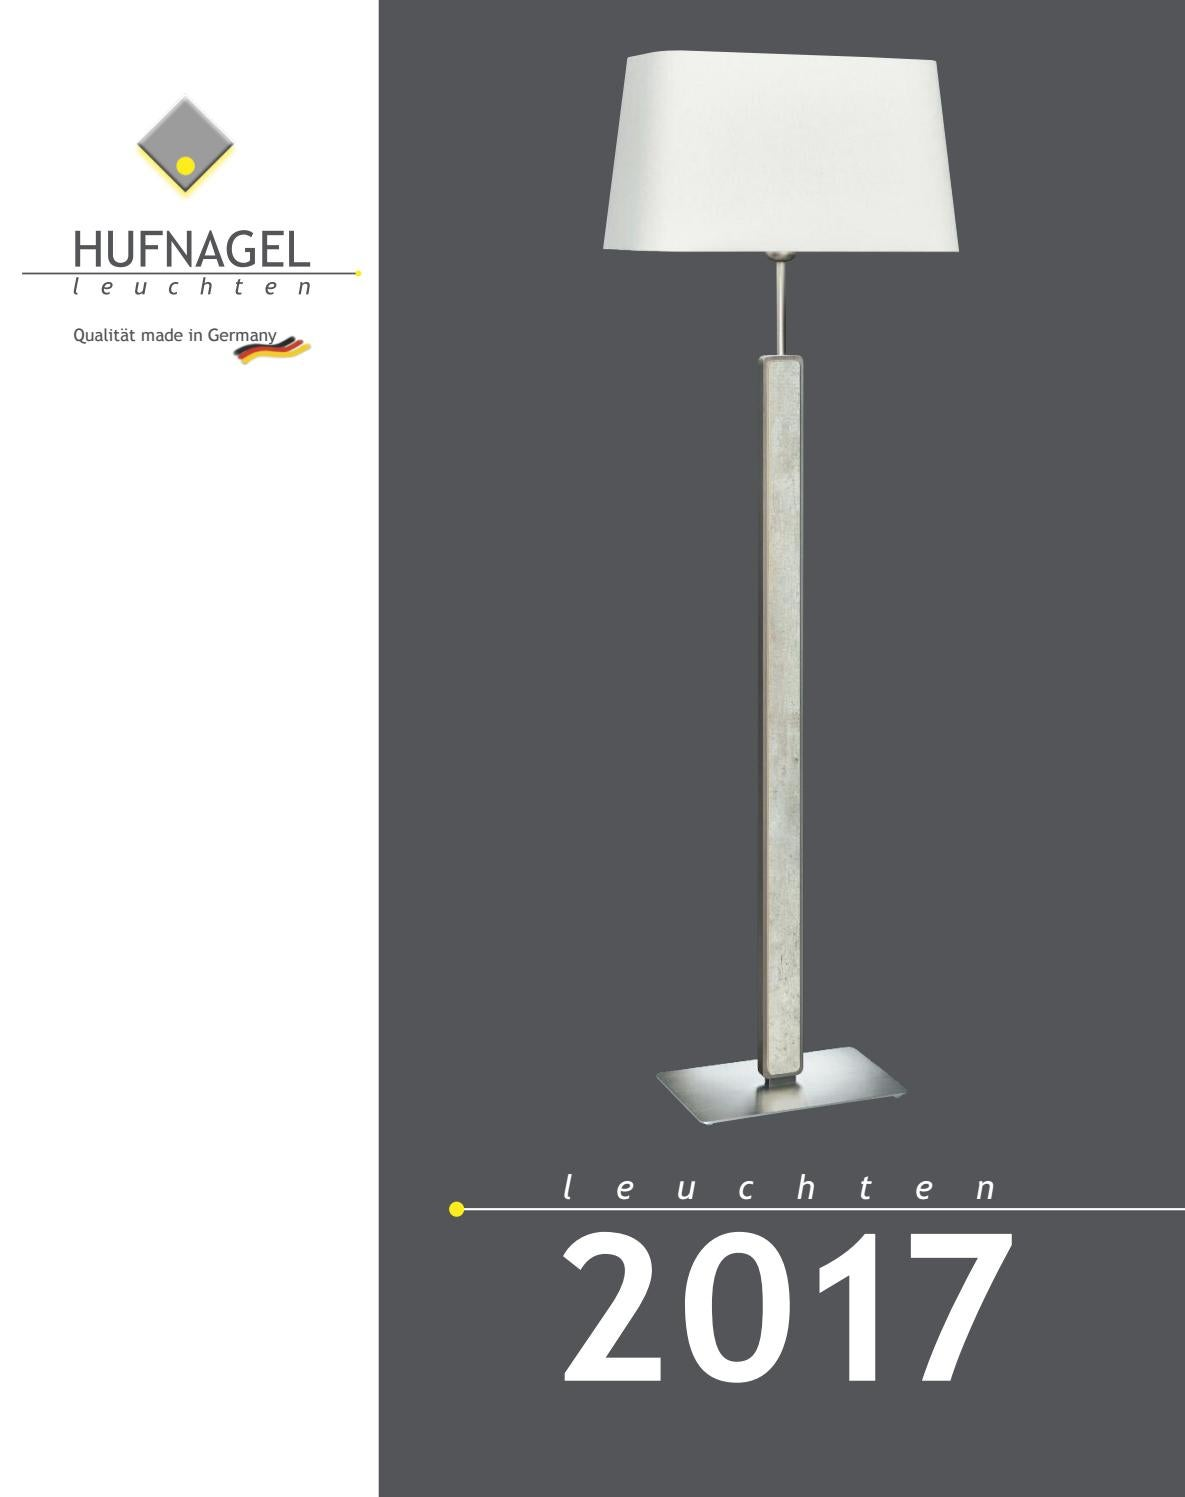 hufnagel leuchten katalog 2017 by firma hufnagel issuu. Black Bedroom Furniture Sets. Home Design Ideas